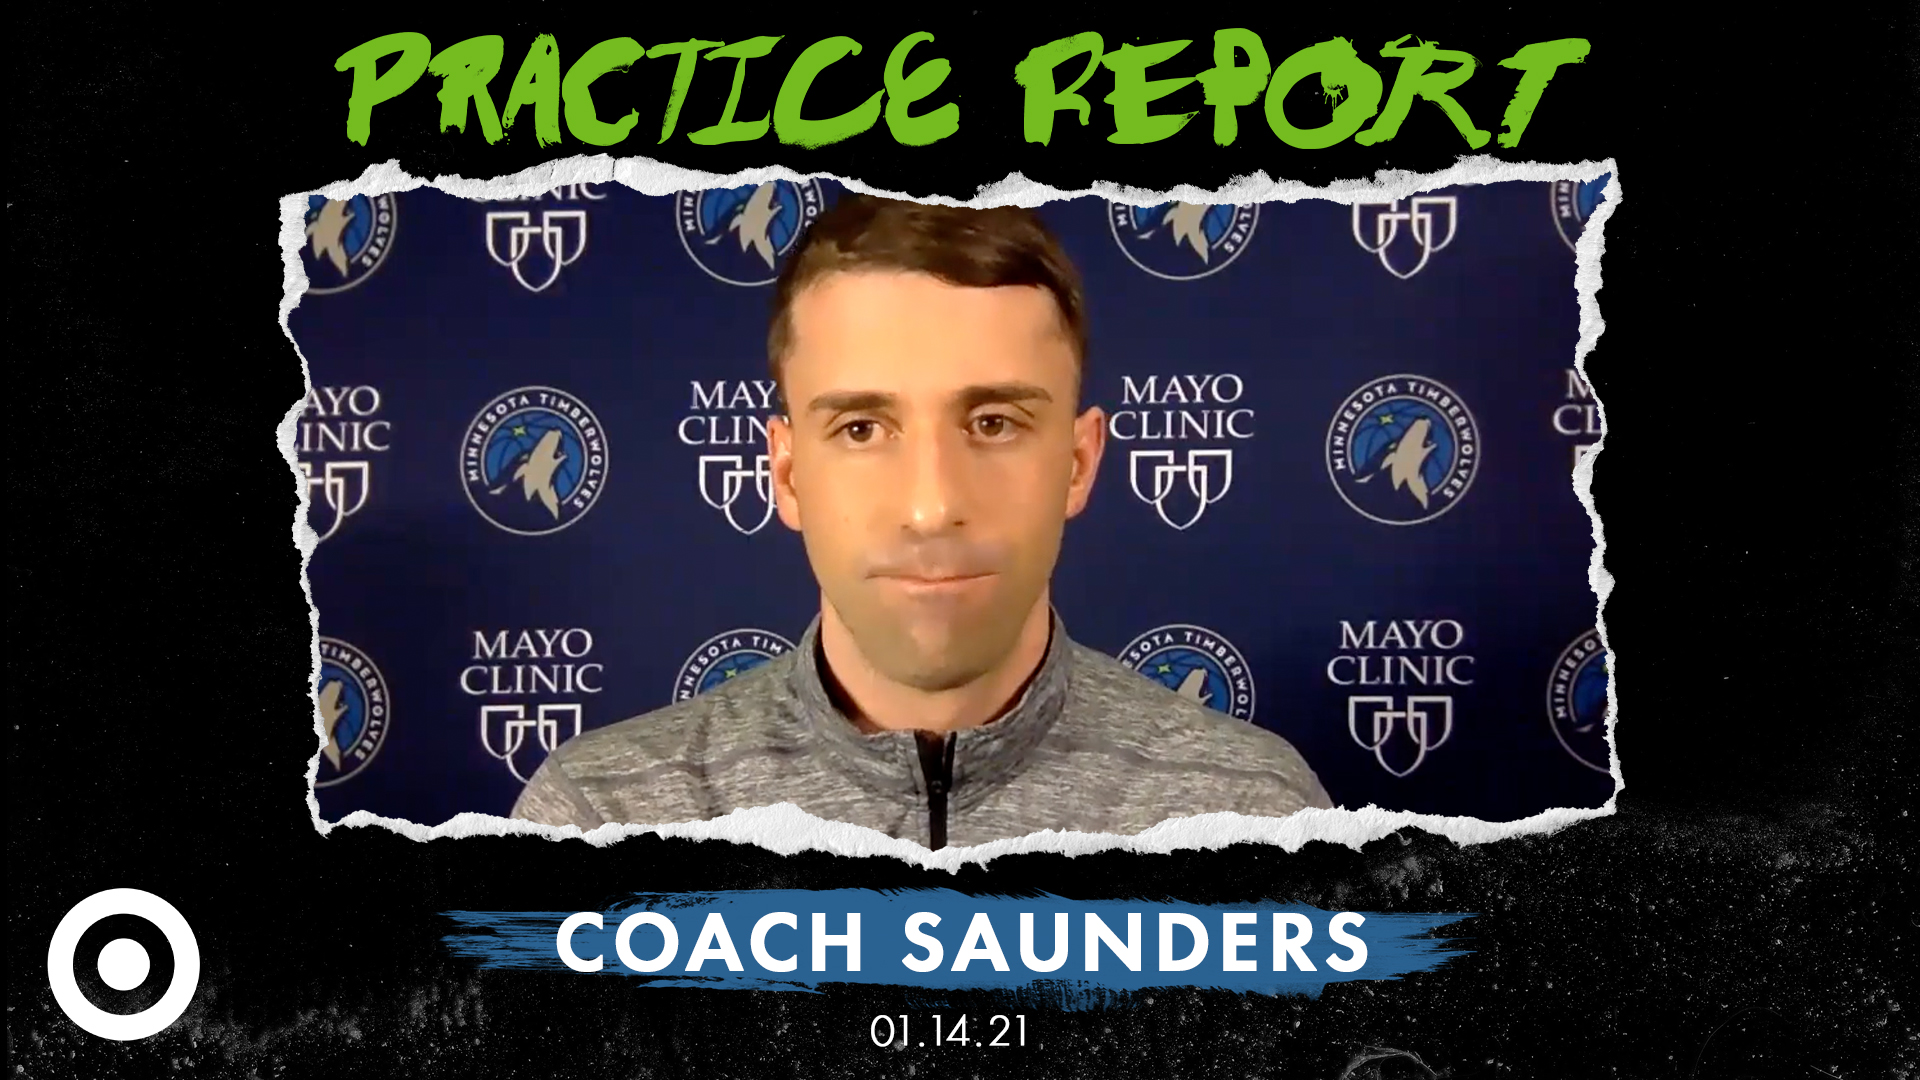 Coach Saunders Practice Report - January 14, 2021